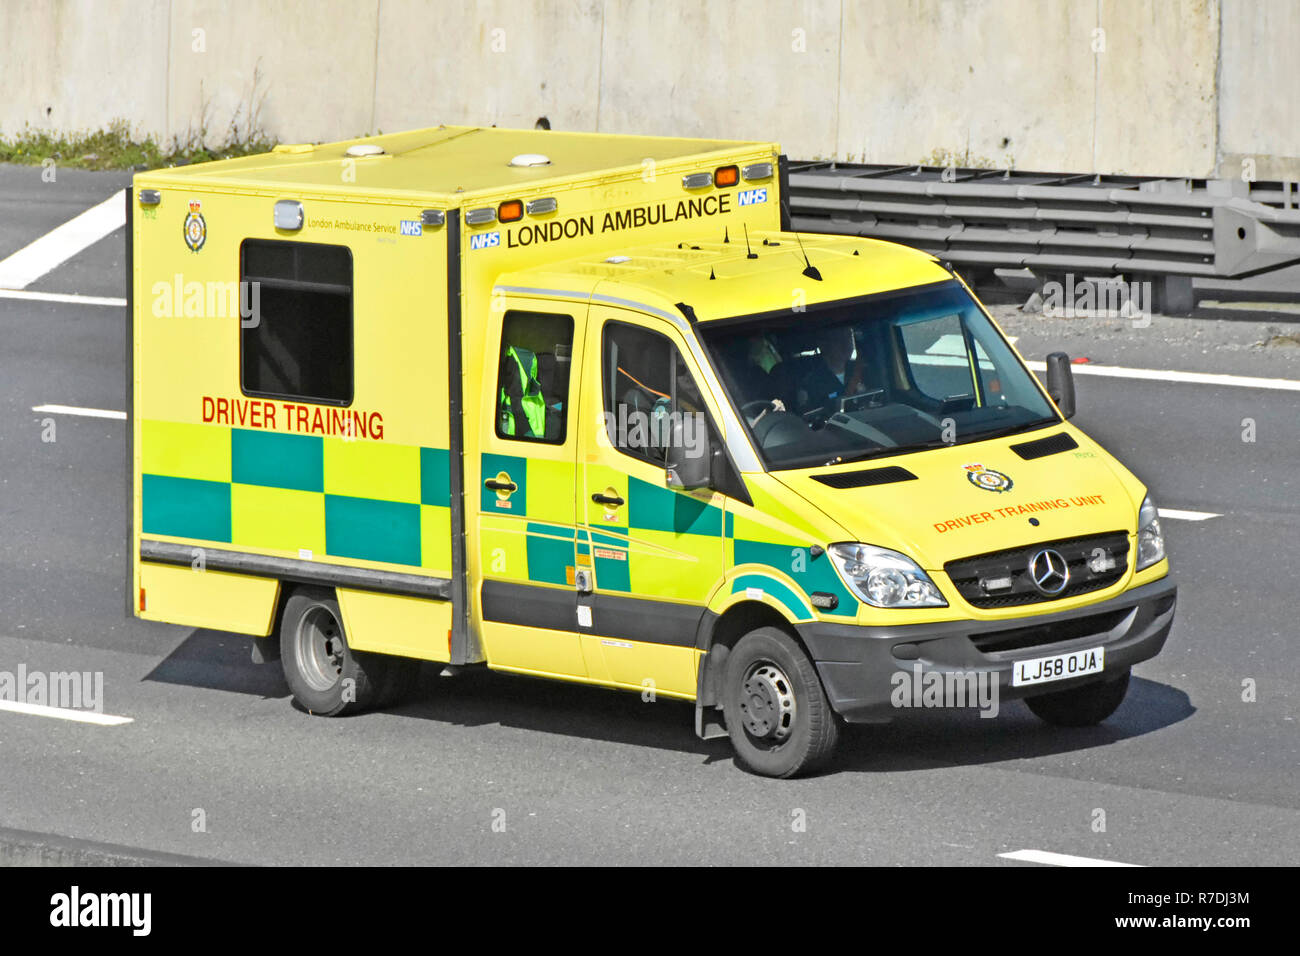 Modified London NHS ambulance driver training & instruction vehicle for education learning practice driving session on M25 motorway Essex England UK - Stock Image